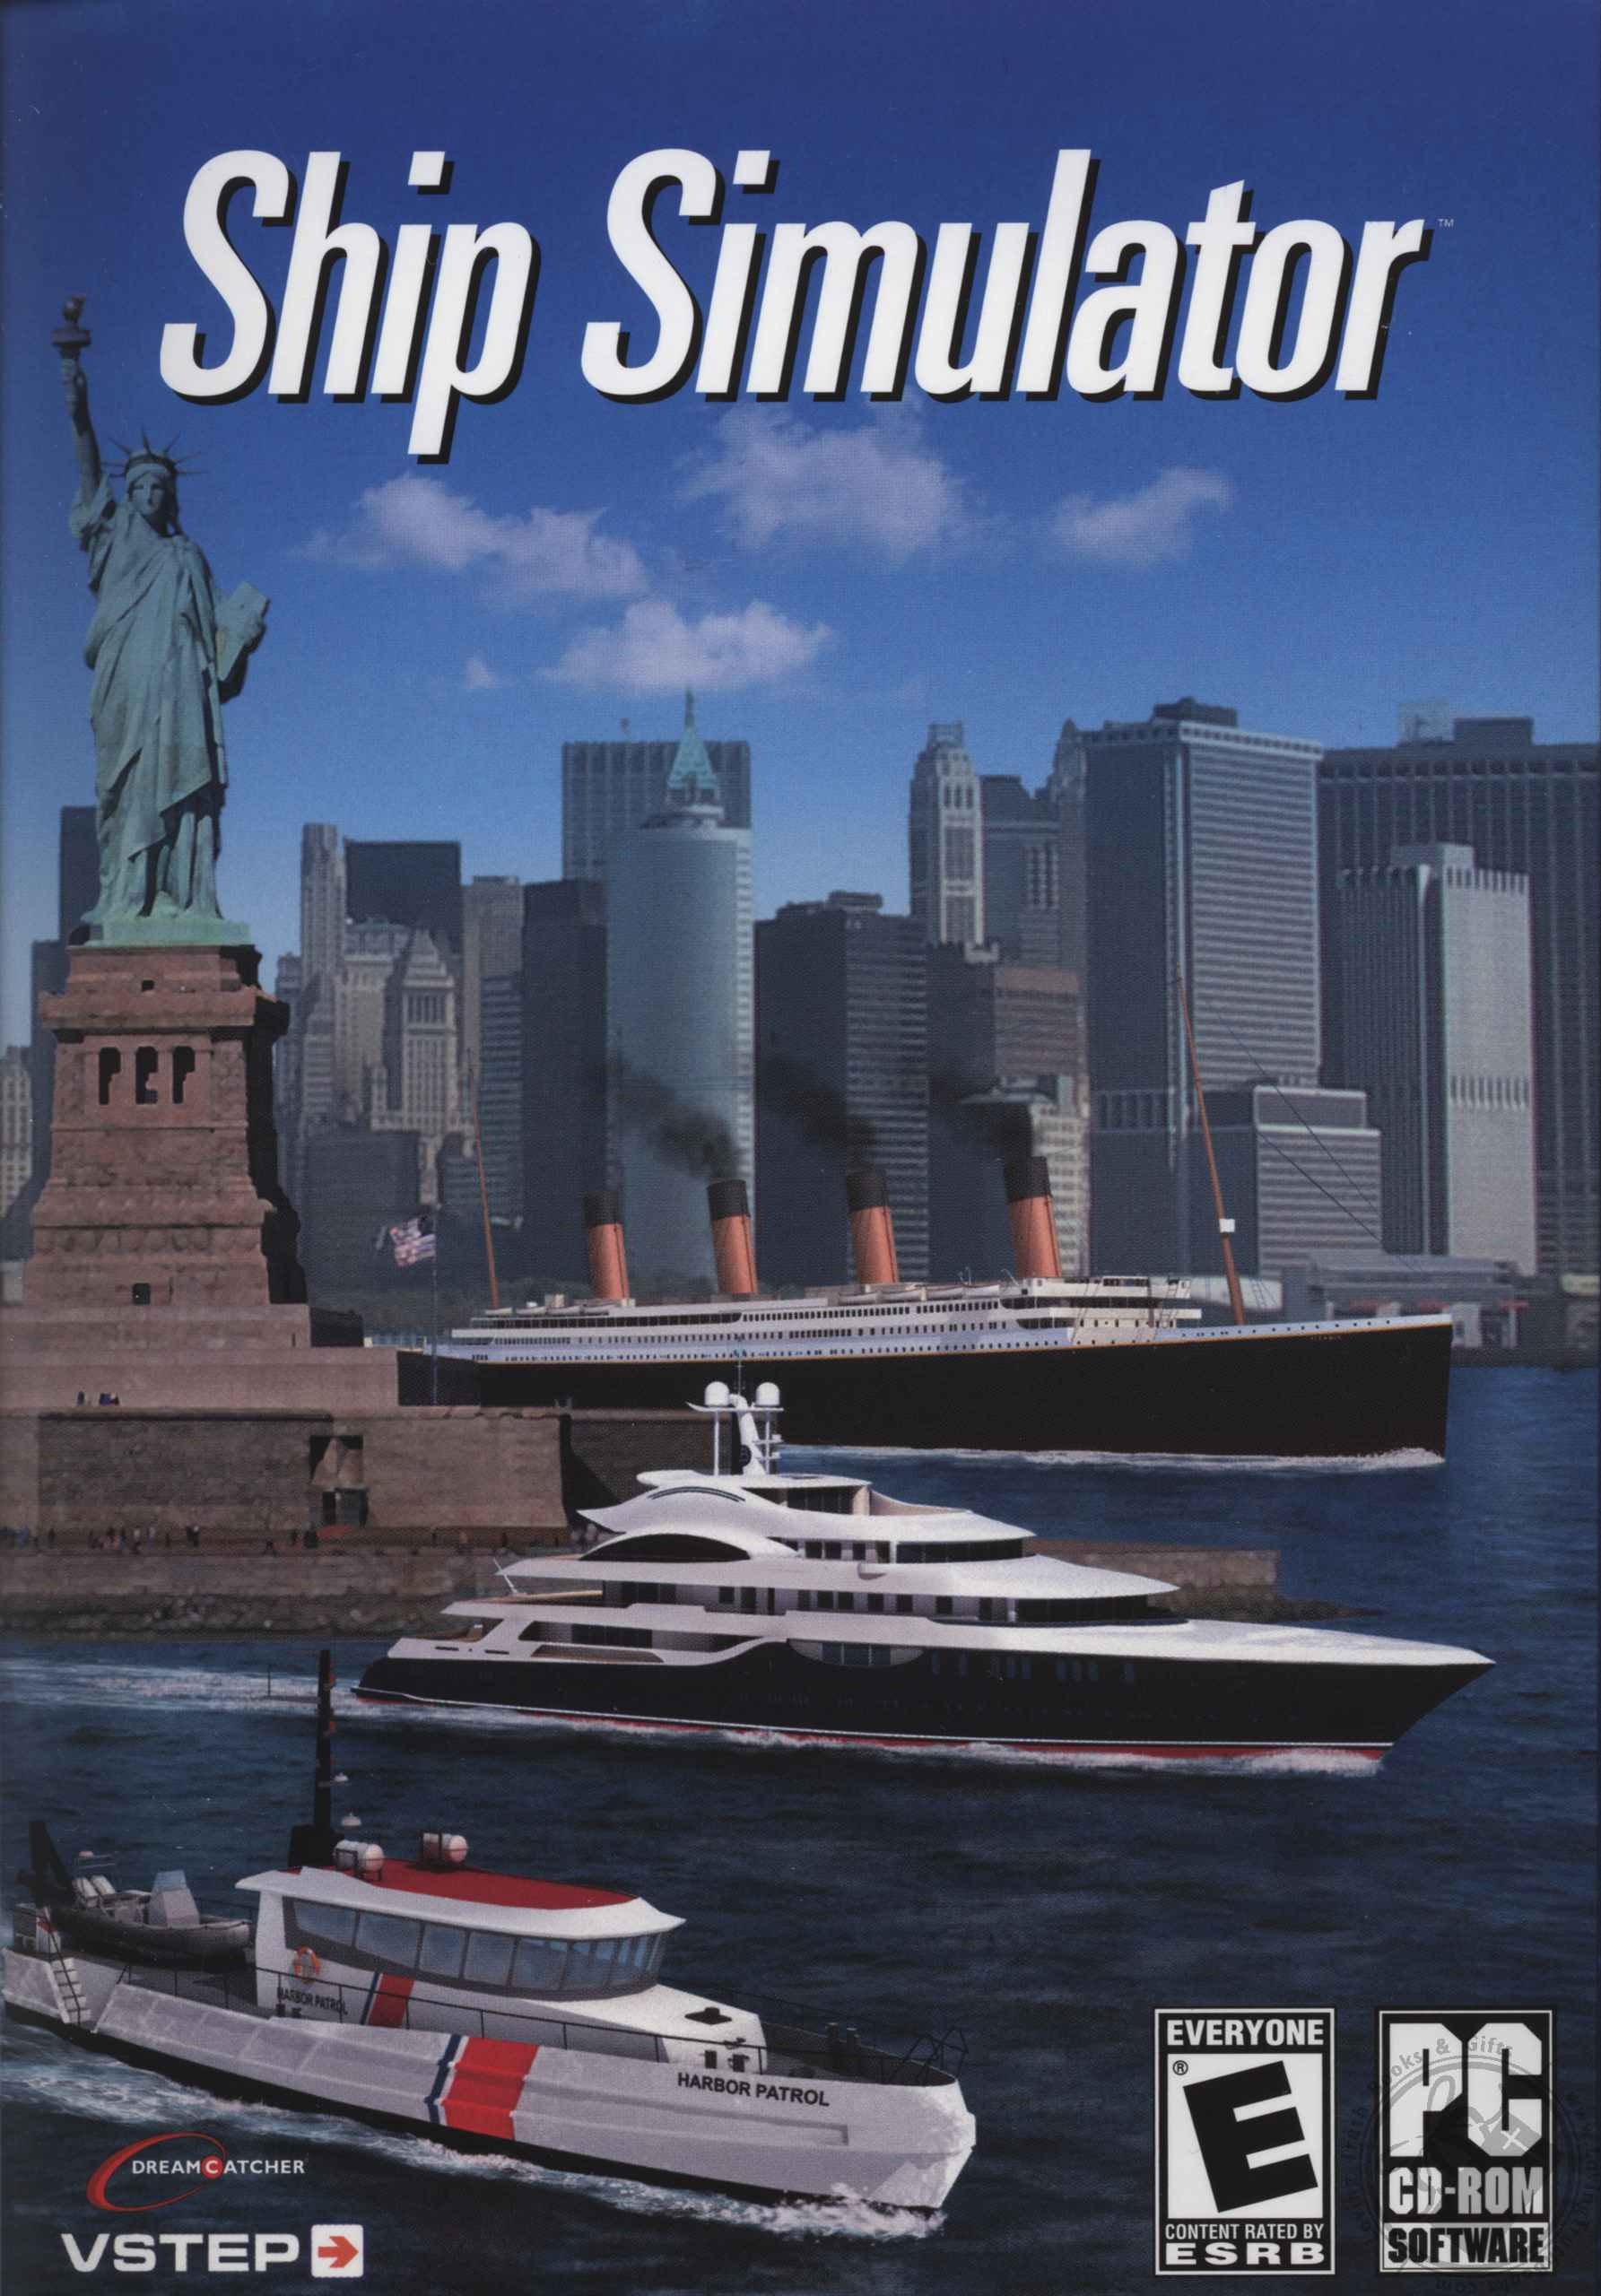 Ship Simulator (Windows 2000 / 98 / Me / XP) by Dreamcatcher